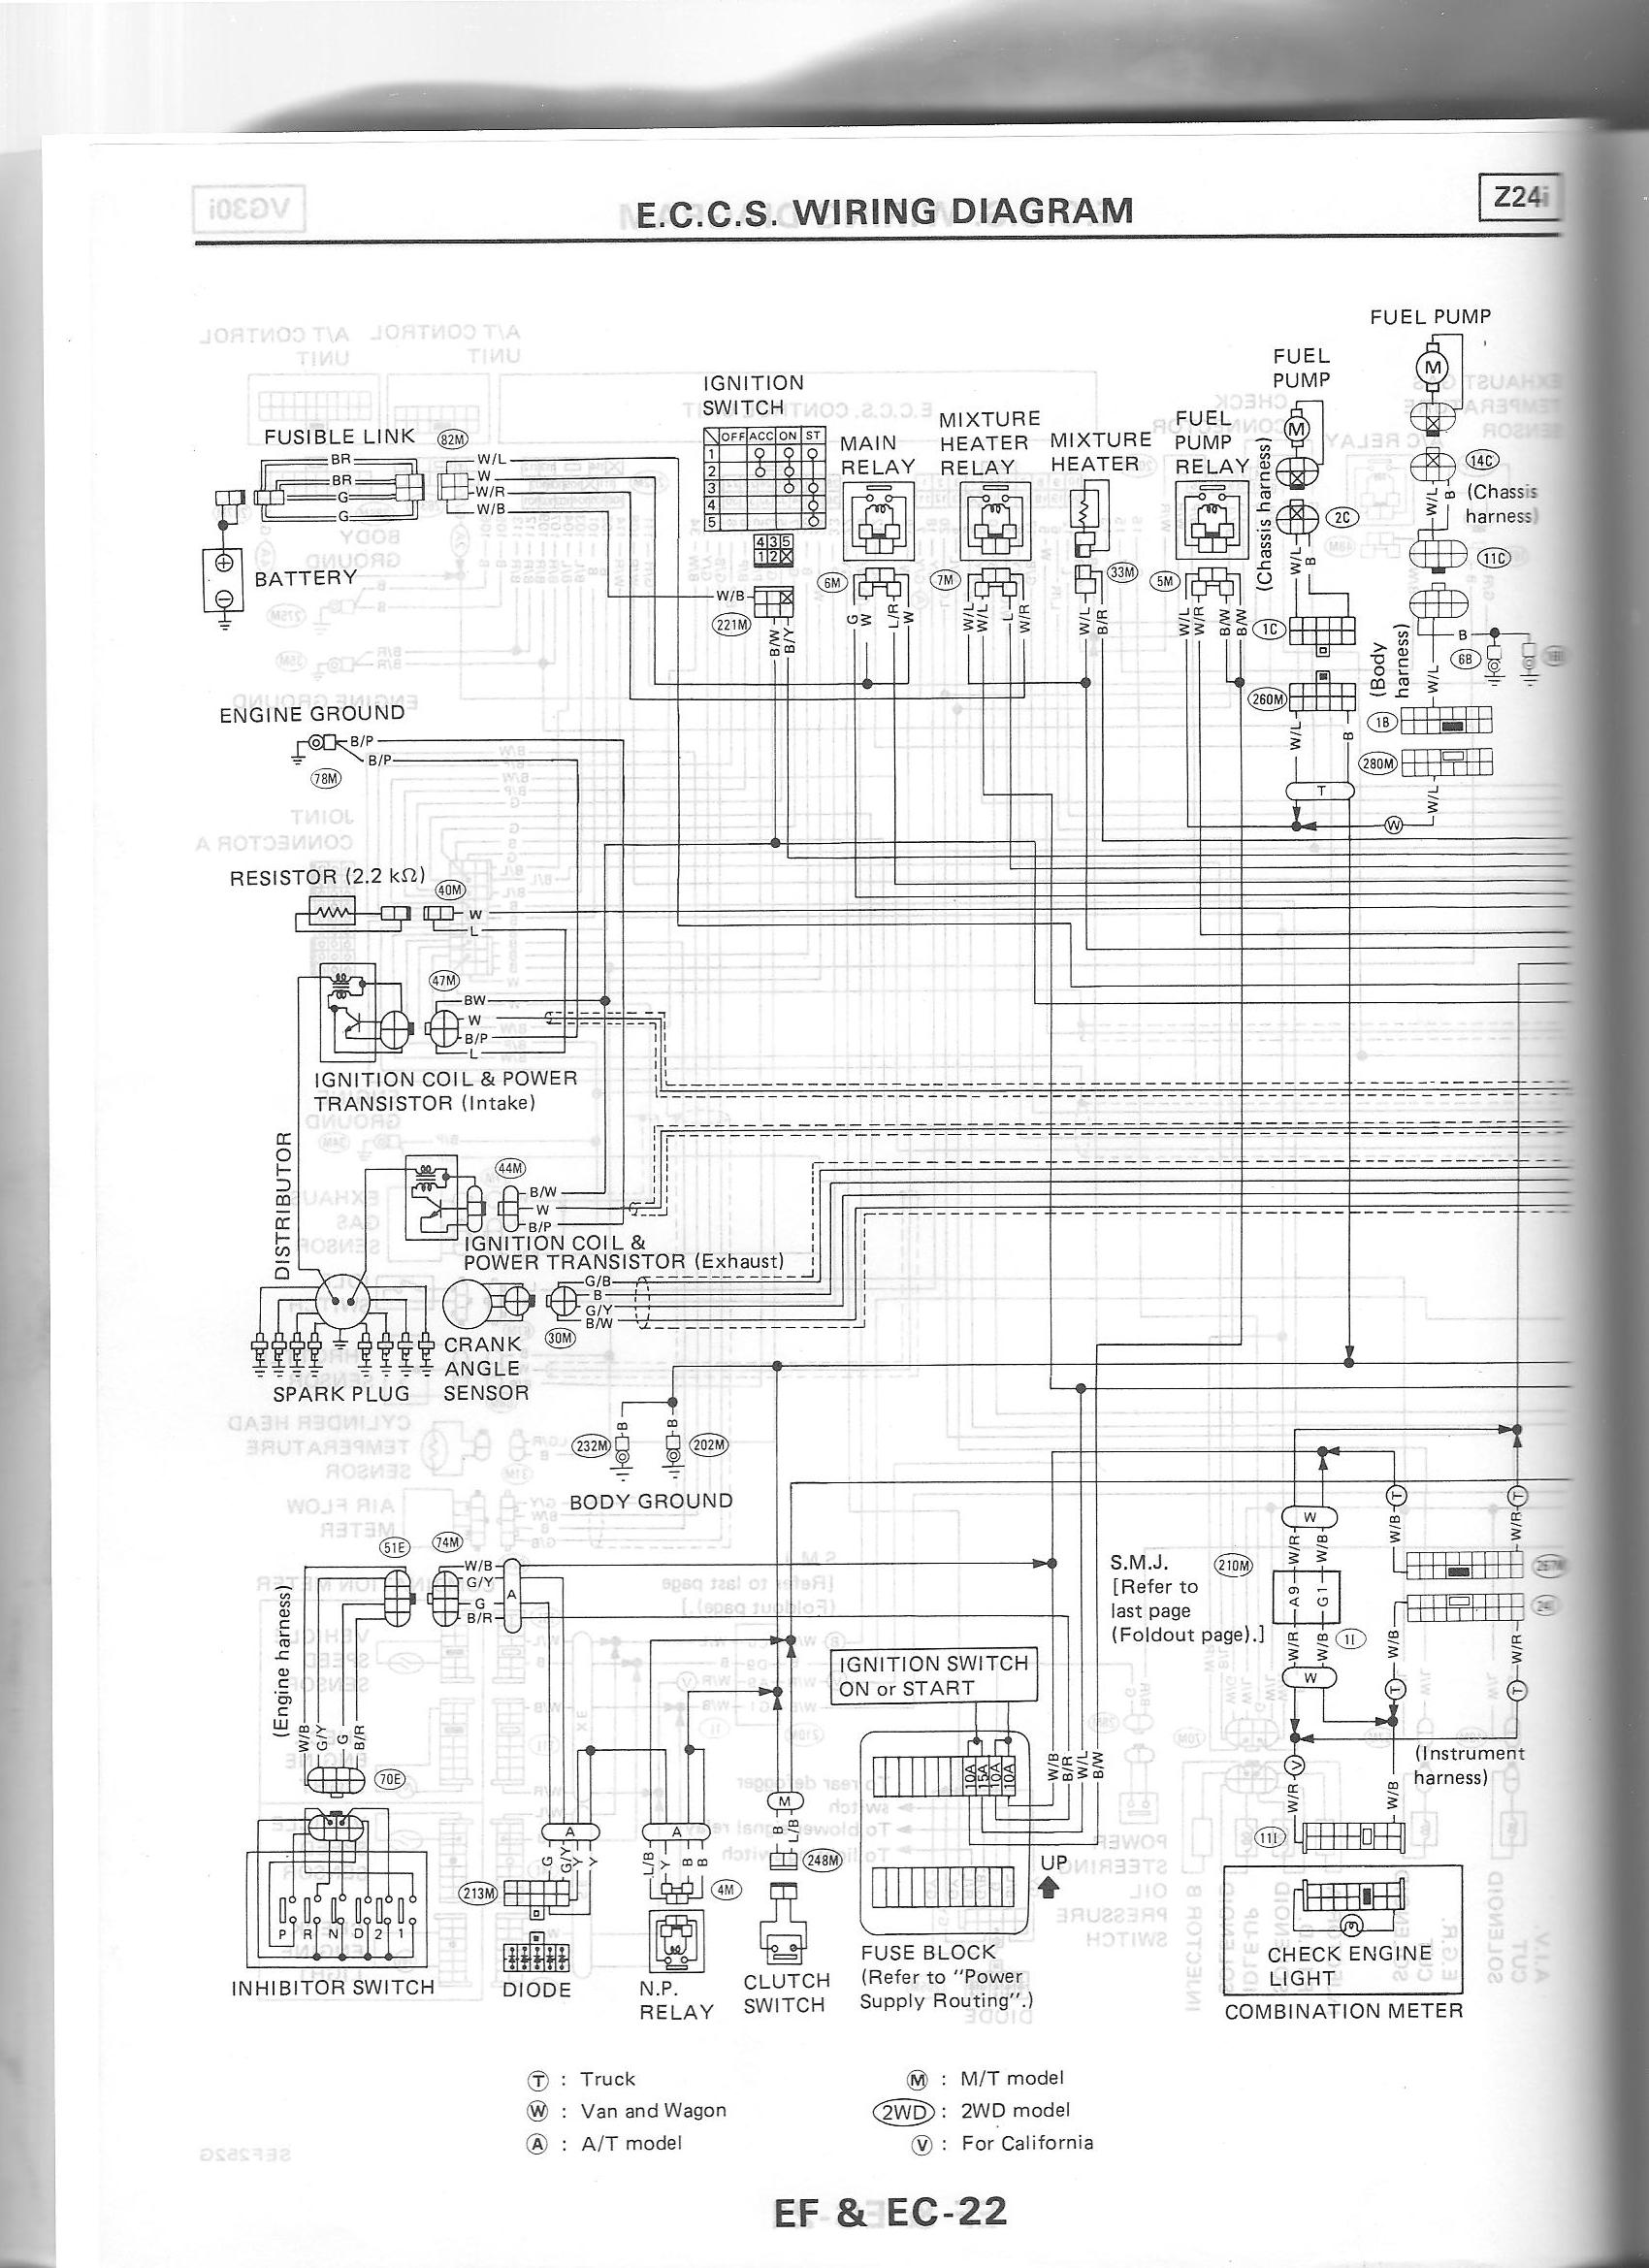 1987 camaro fuse box diagram nissan nut